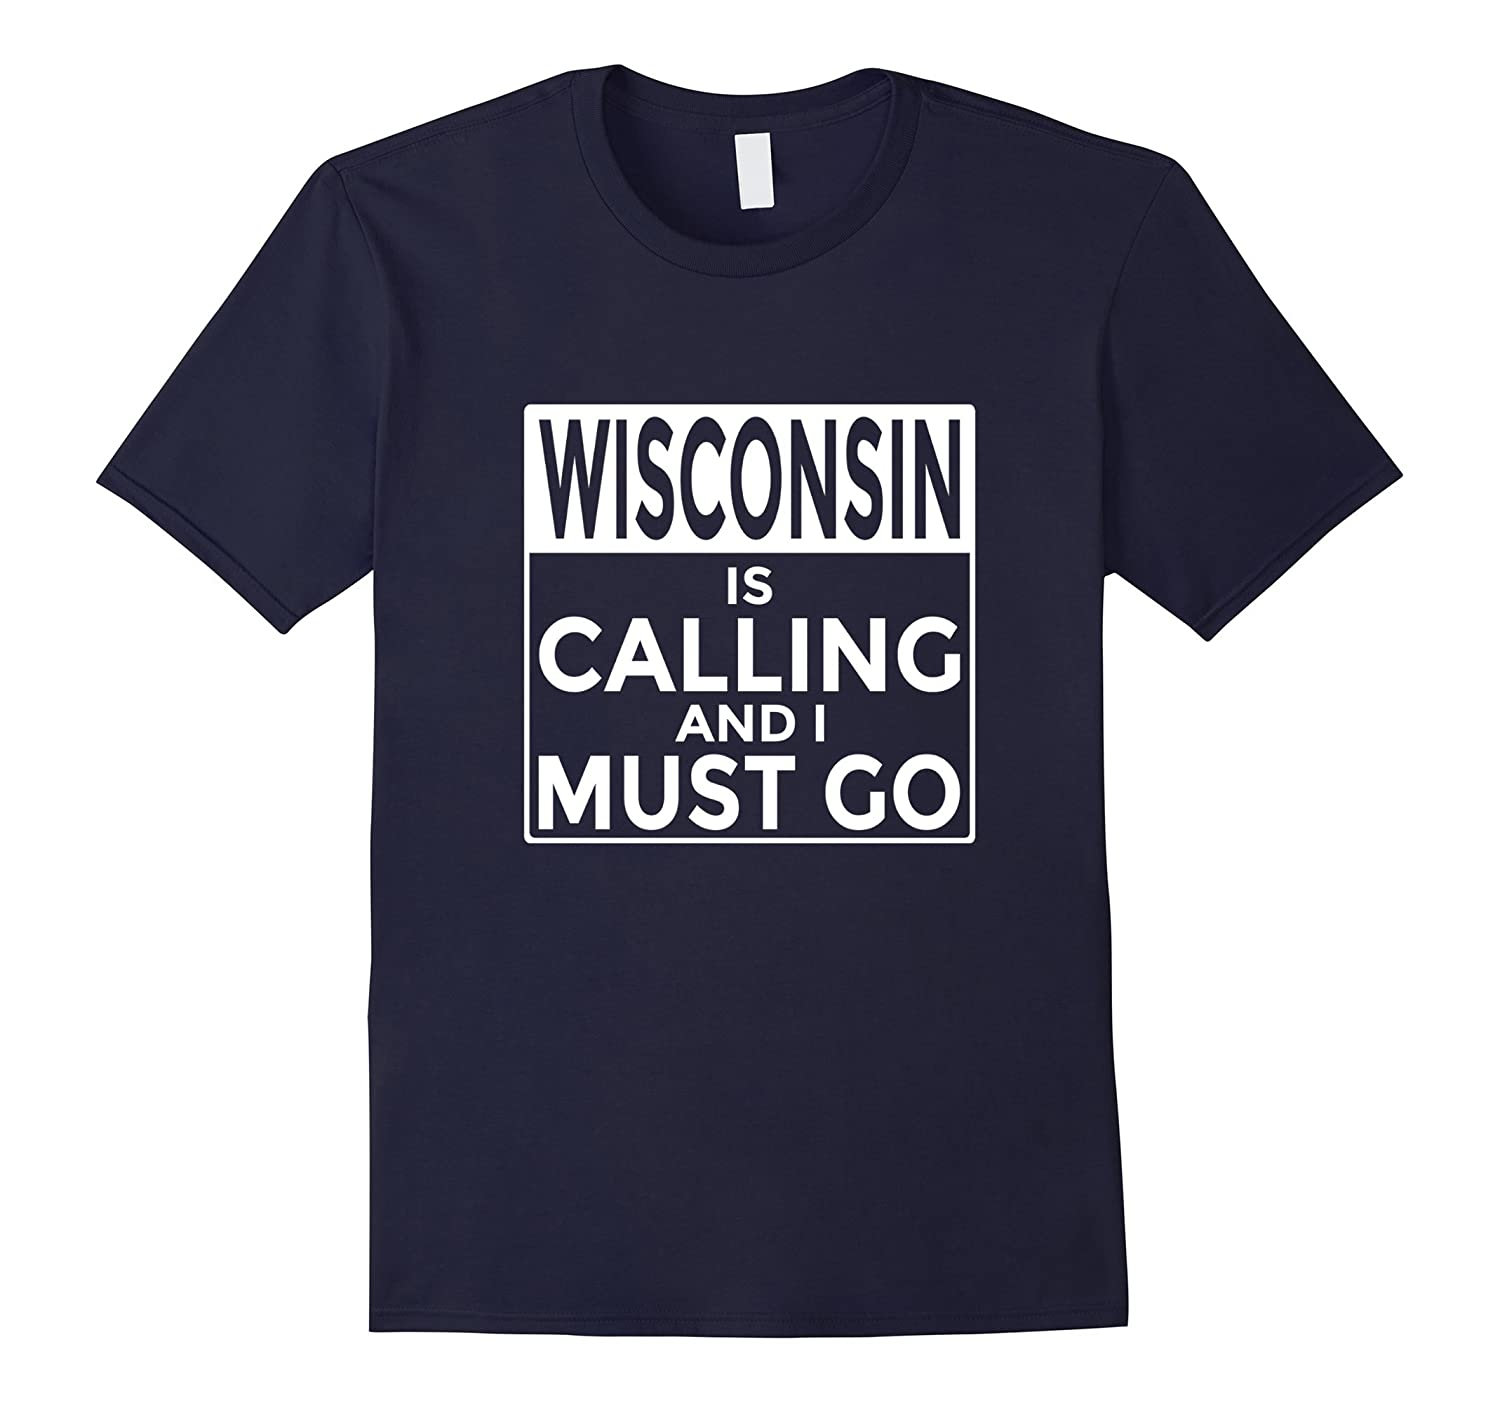 Funny Wisconsin T-Shirt Wisconsin is Calling and I Must Go-FL